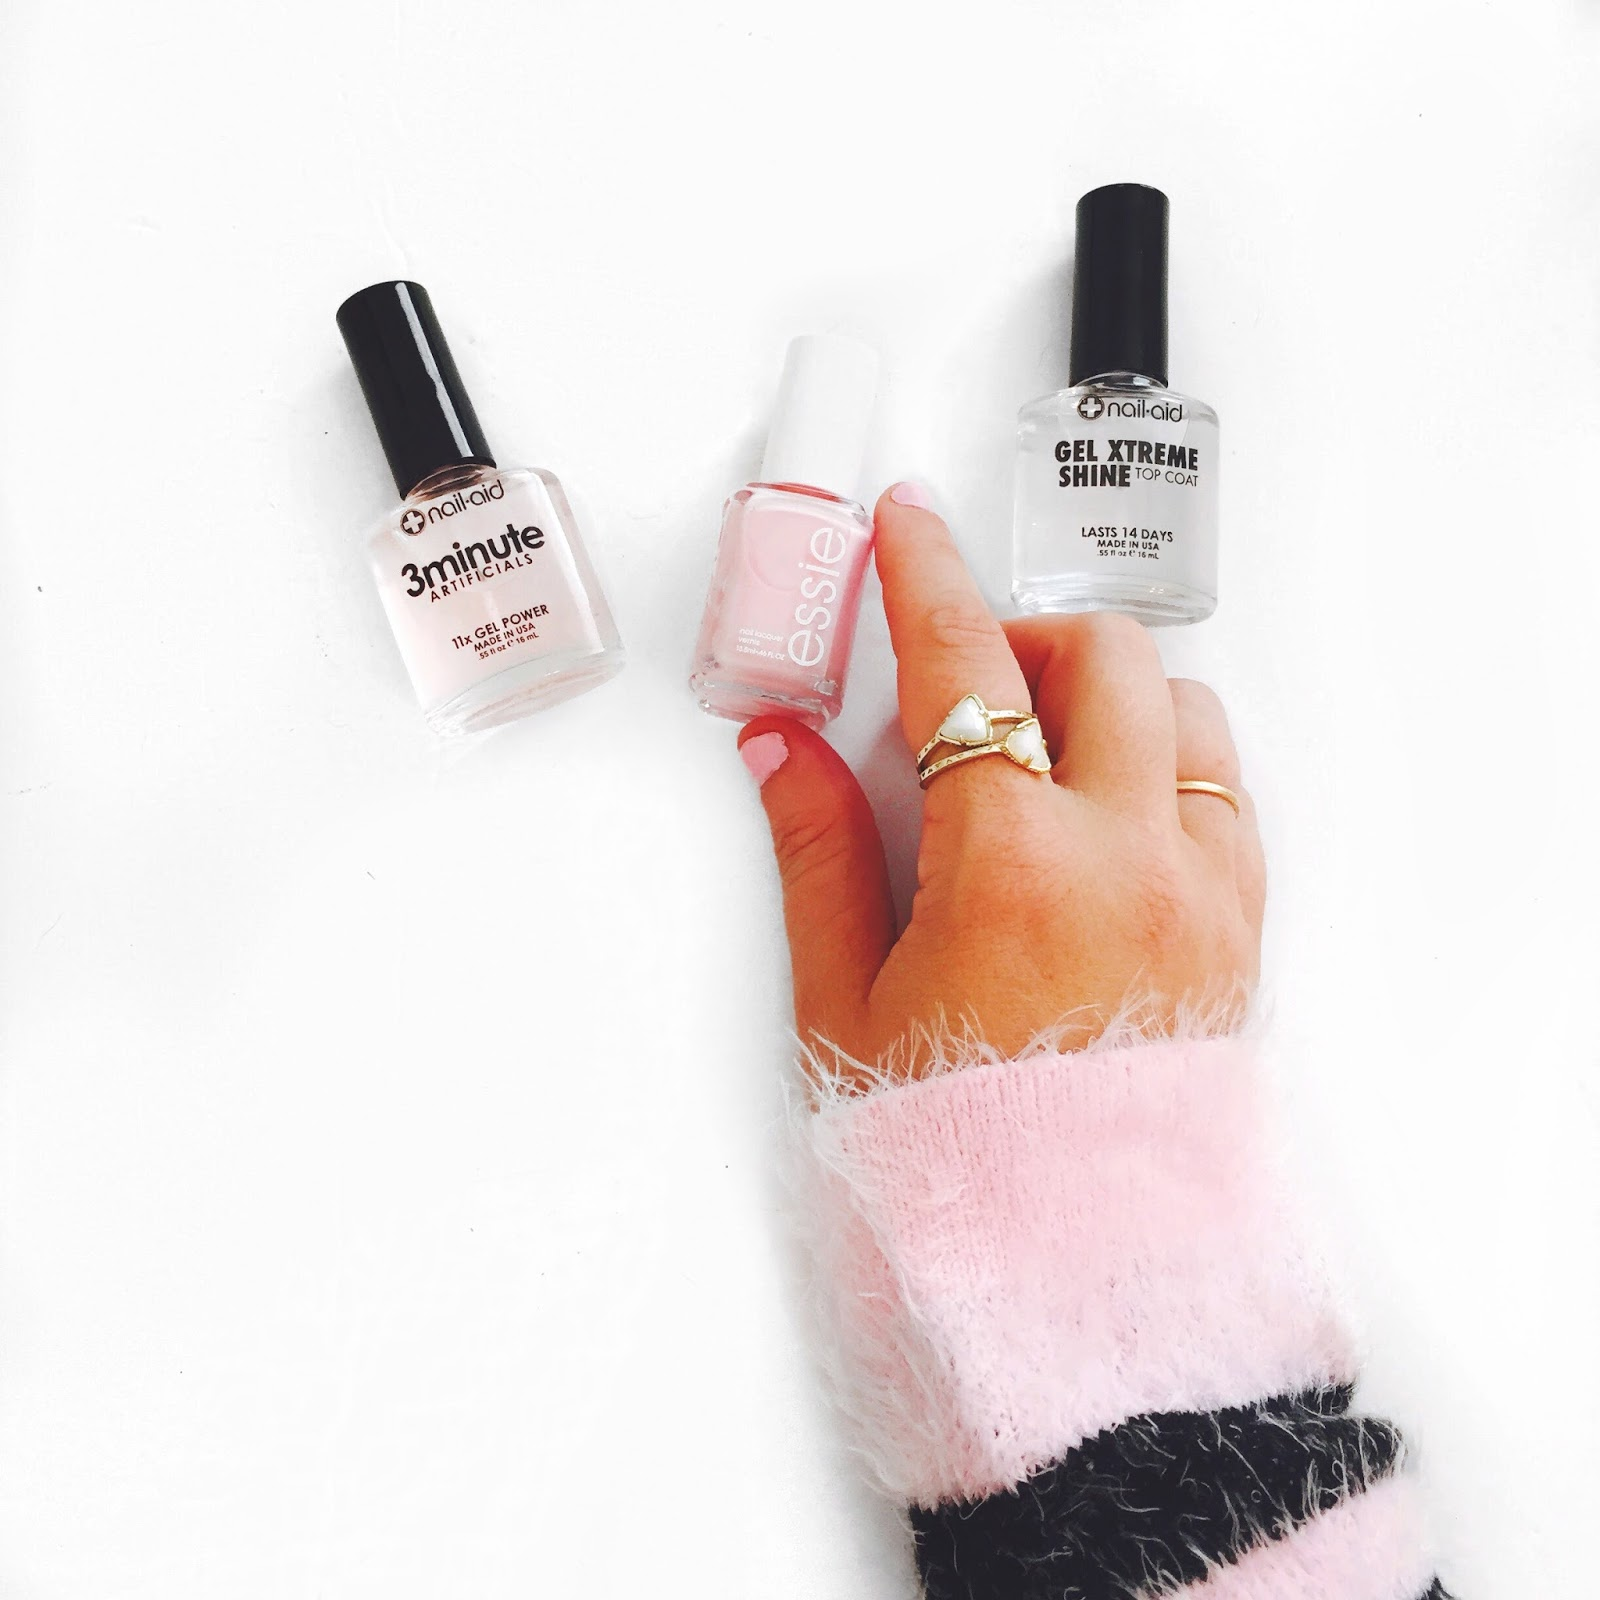 3 steps to gel nails at home